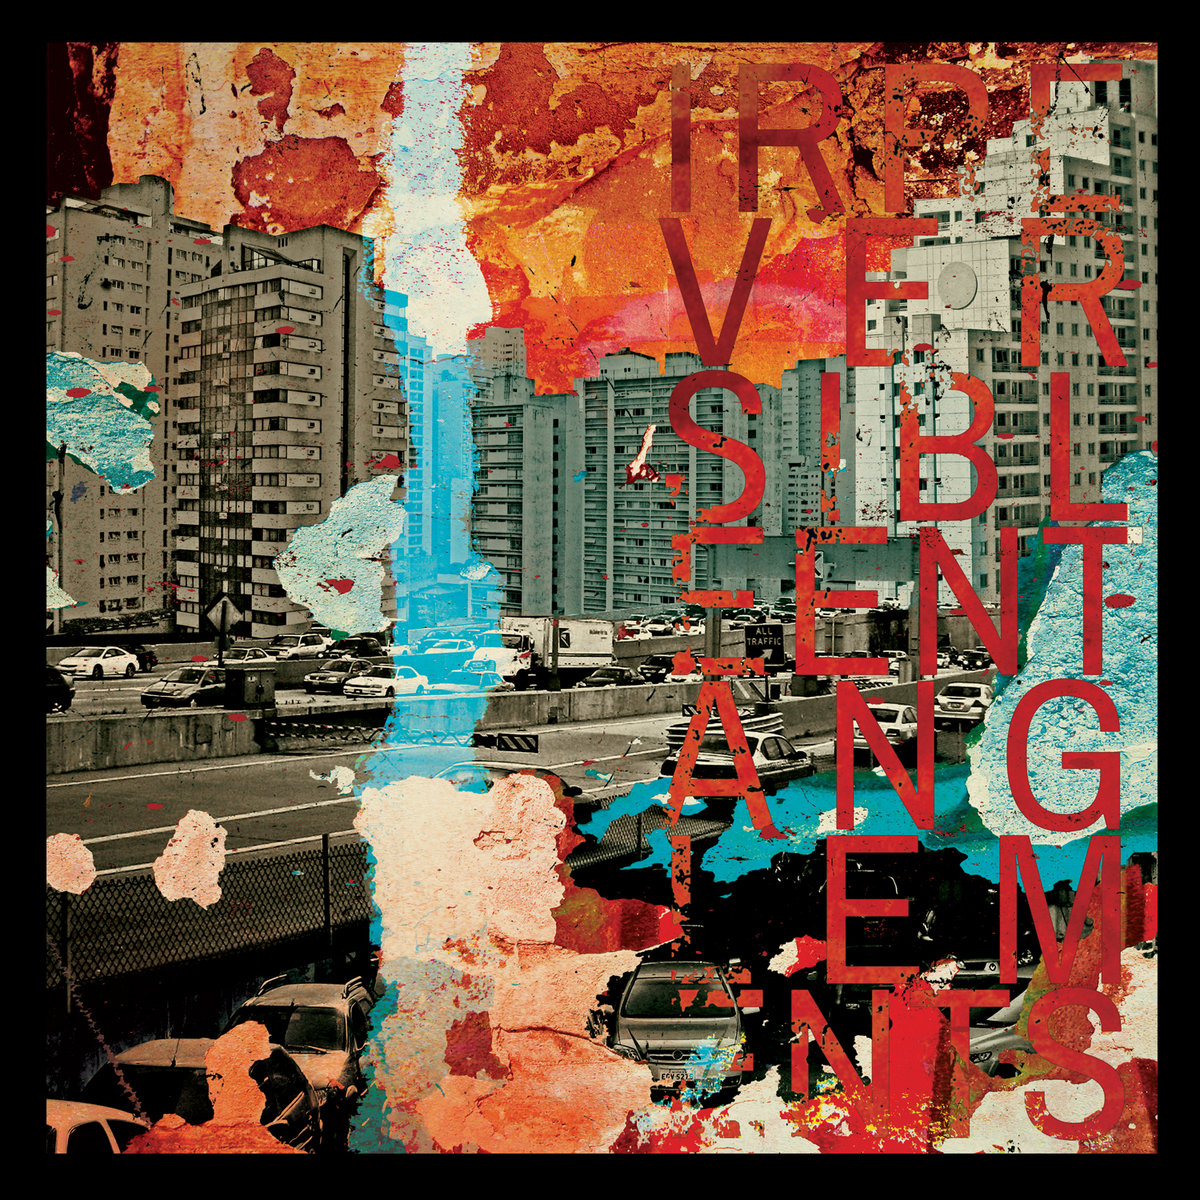 Review: Irreversible Entanglements (2017)